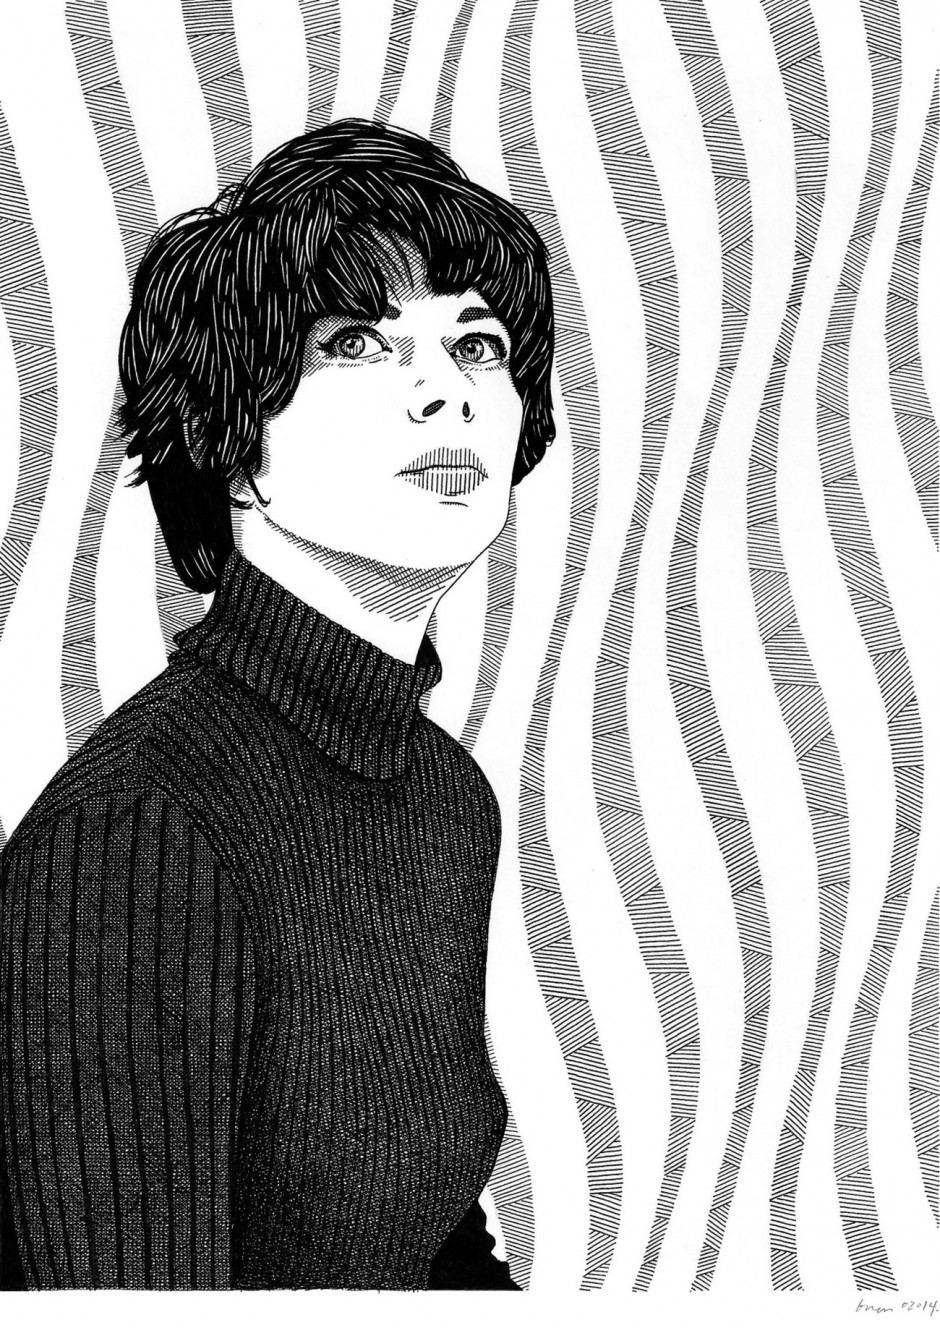 Portrait der Op-Art-Malerin Bridget Riley